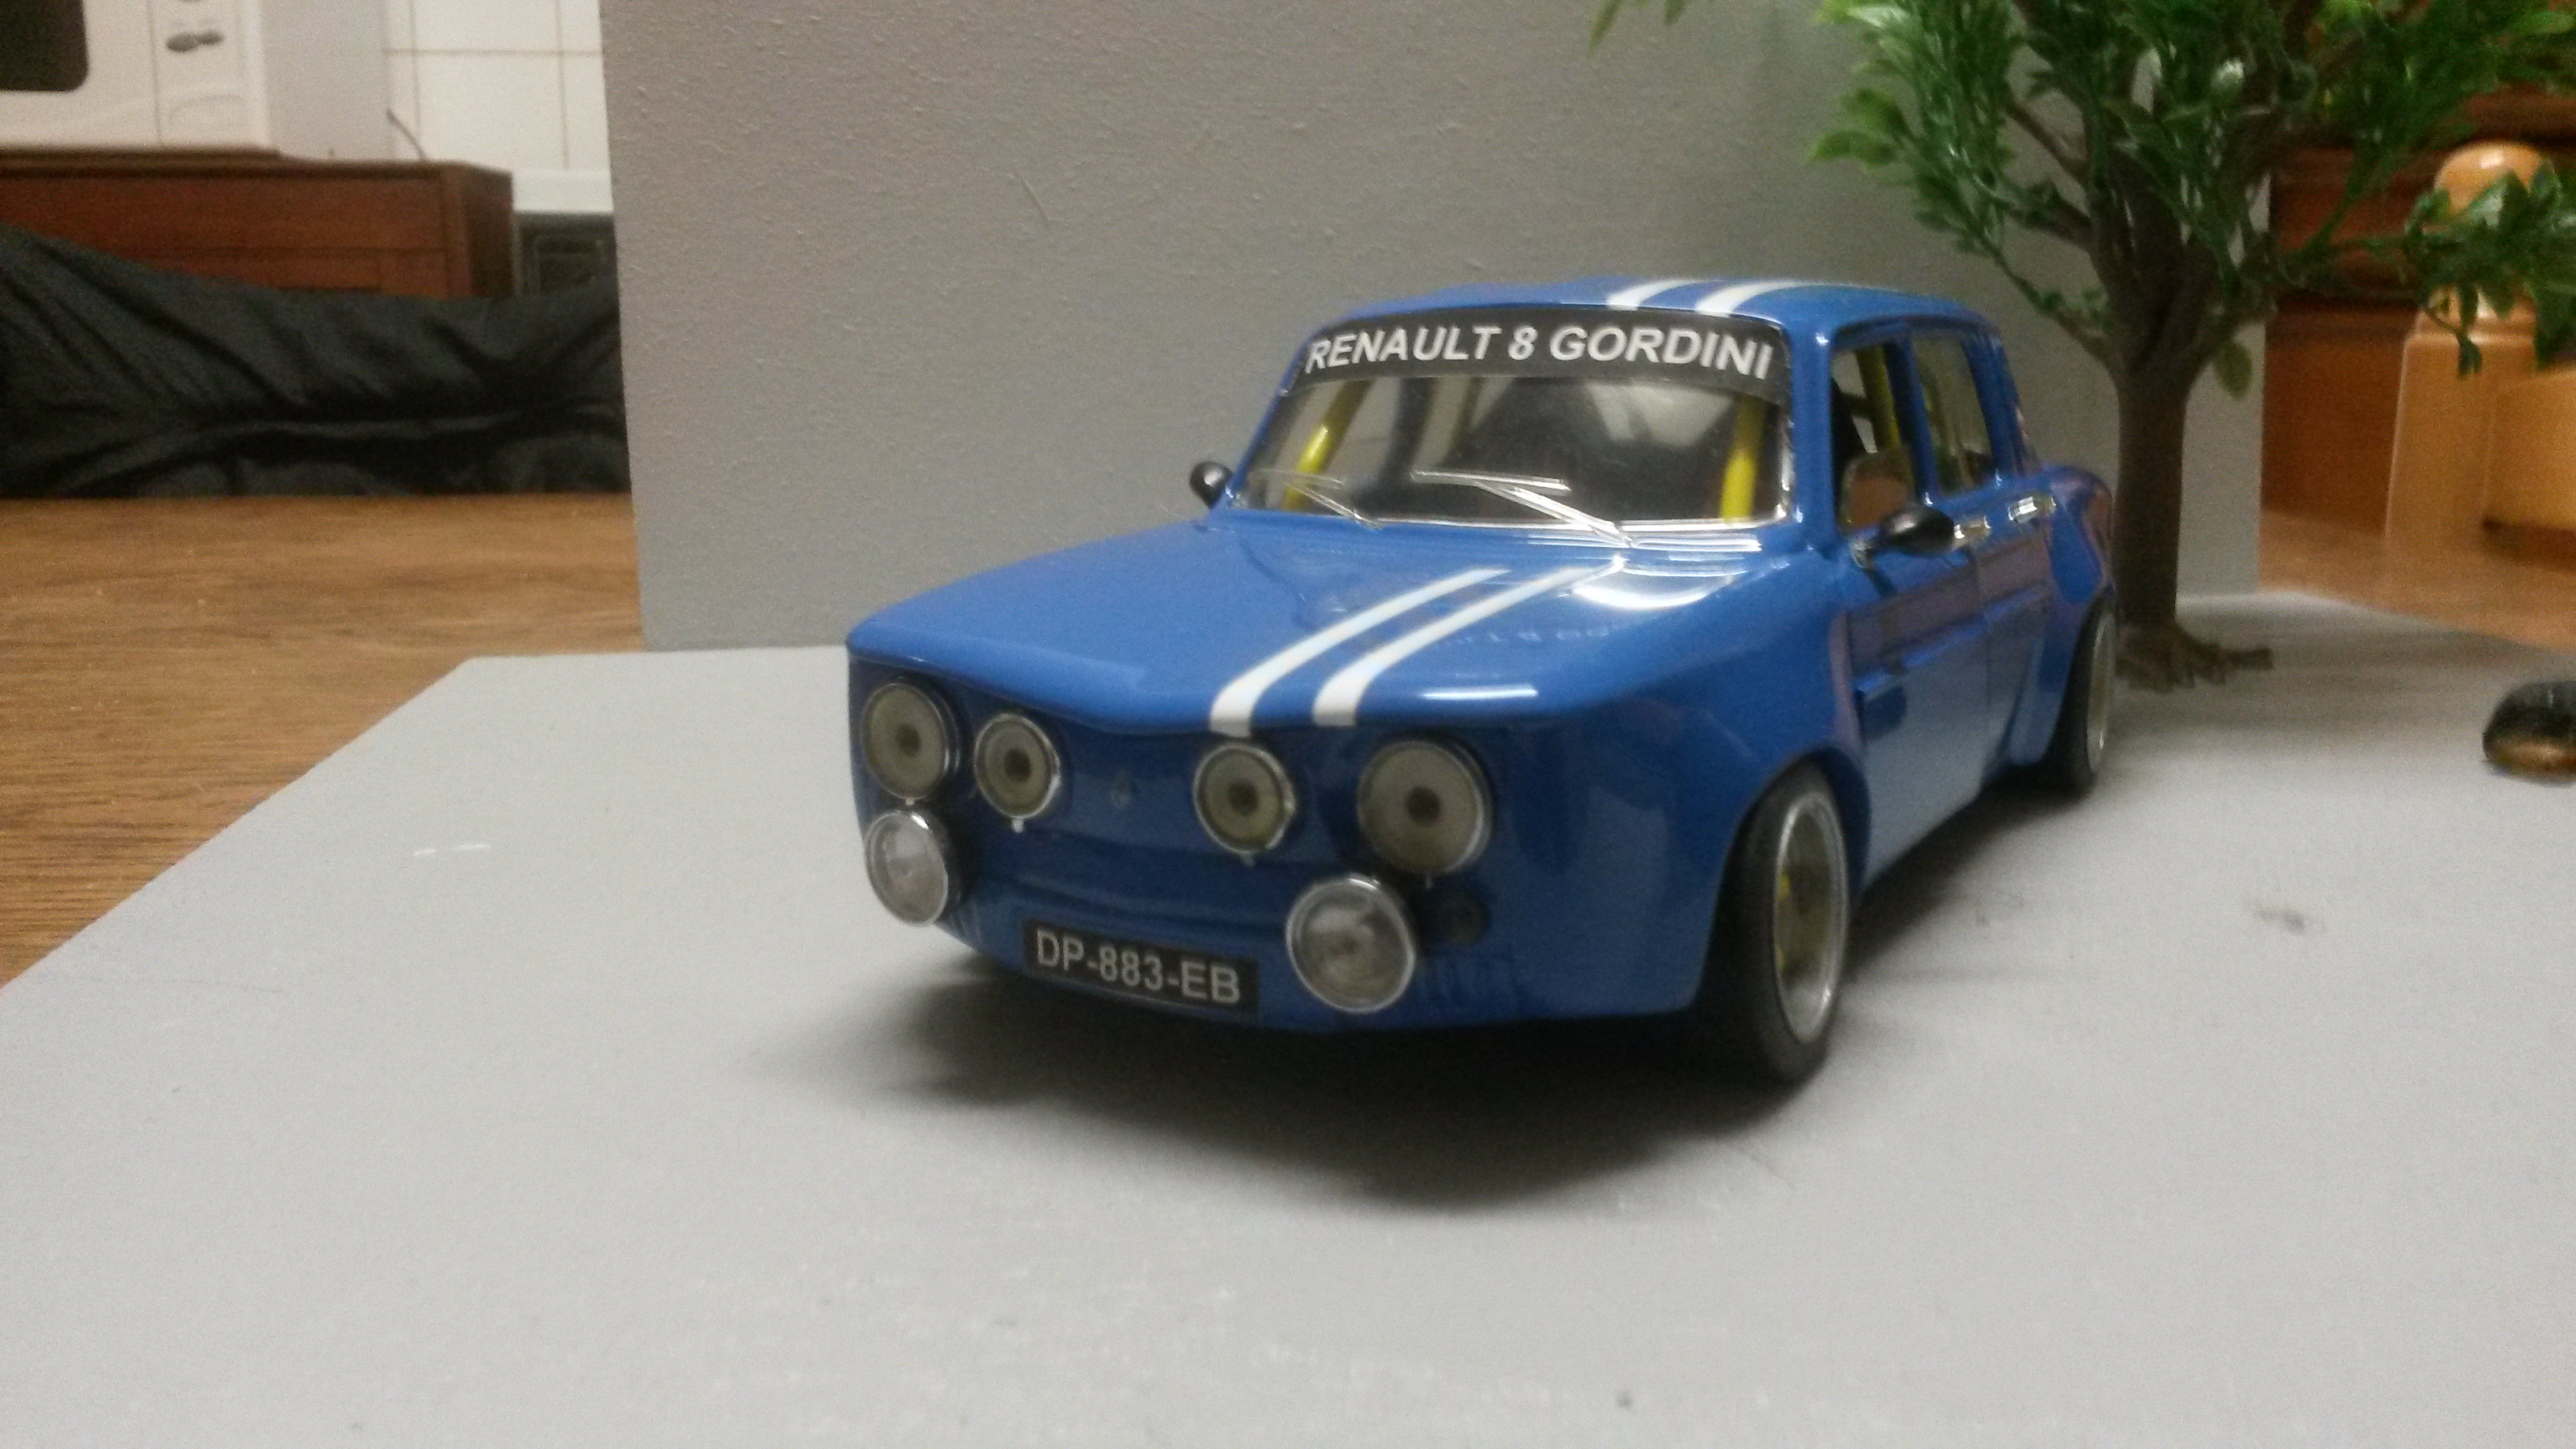 Renault 8 Gordini 1/18 Burago bleu kit large groupe A tuning miniature